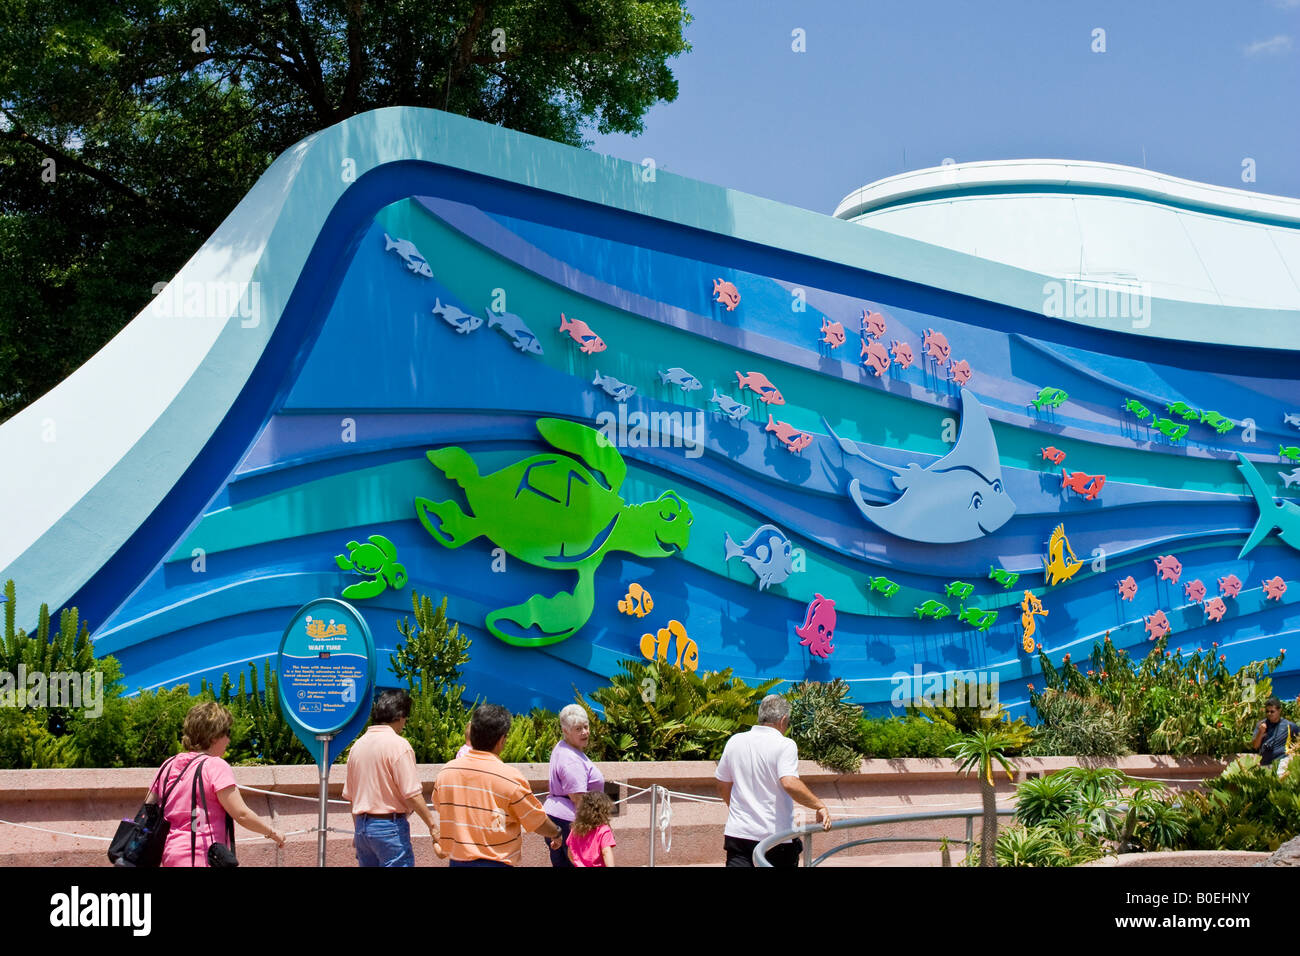 entrance to the seas with nemo attraction at walt disney 39 s epcot stock photo 17531639 alamy. Black Bedroom Furniture Sets. Home Design Ideas